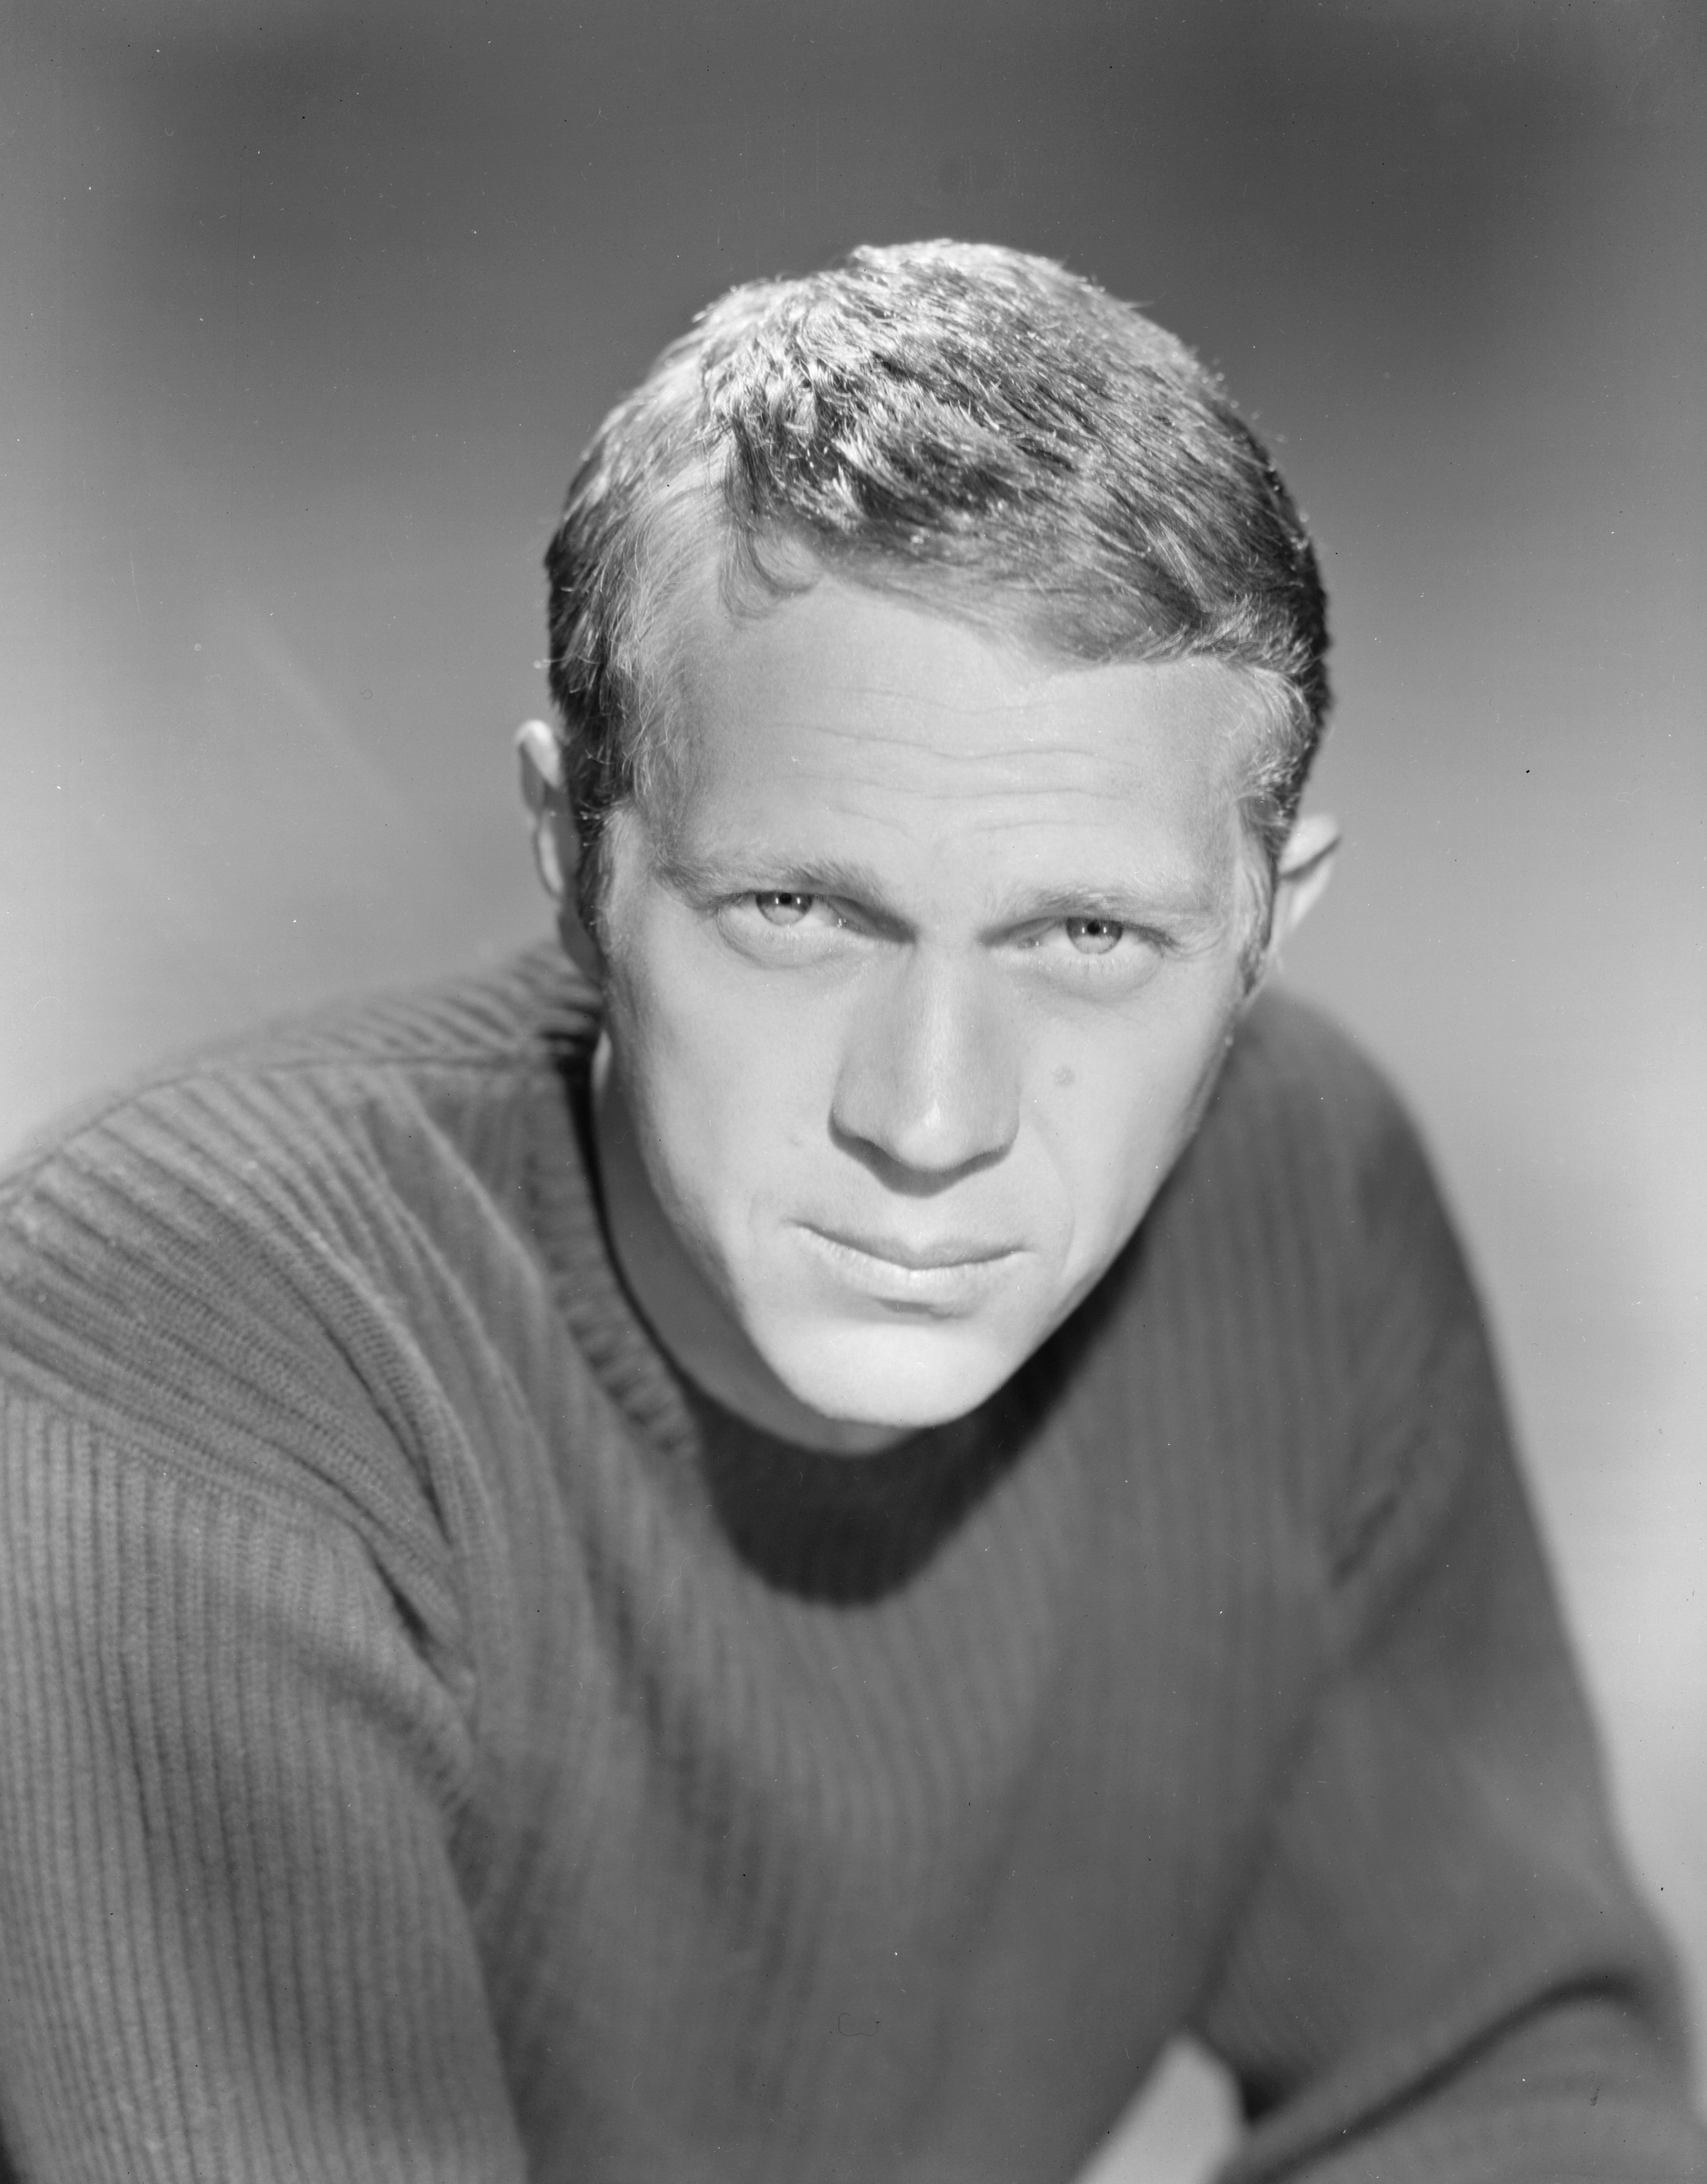 American actor Steve McQueen (1930 - 1980). circa 1960 | Source: Getty Images